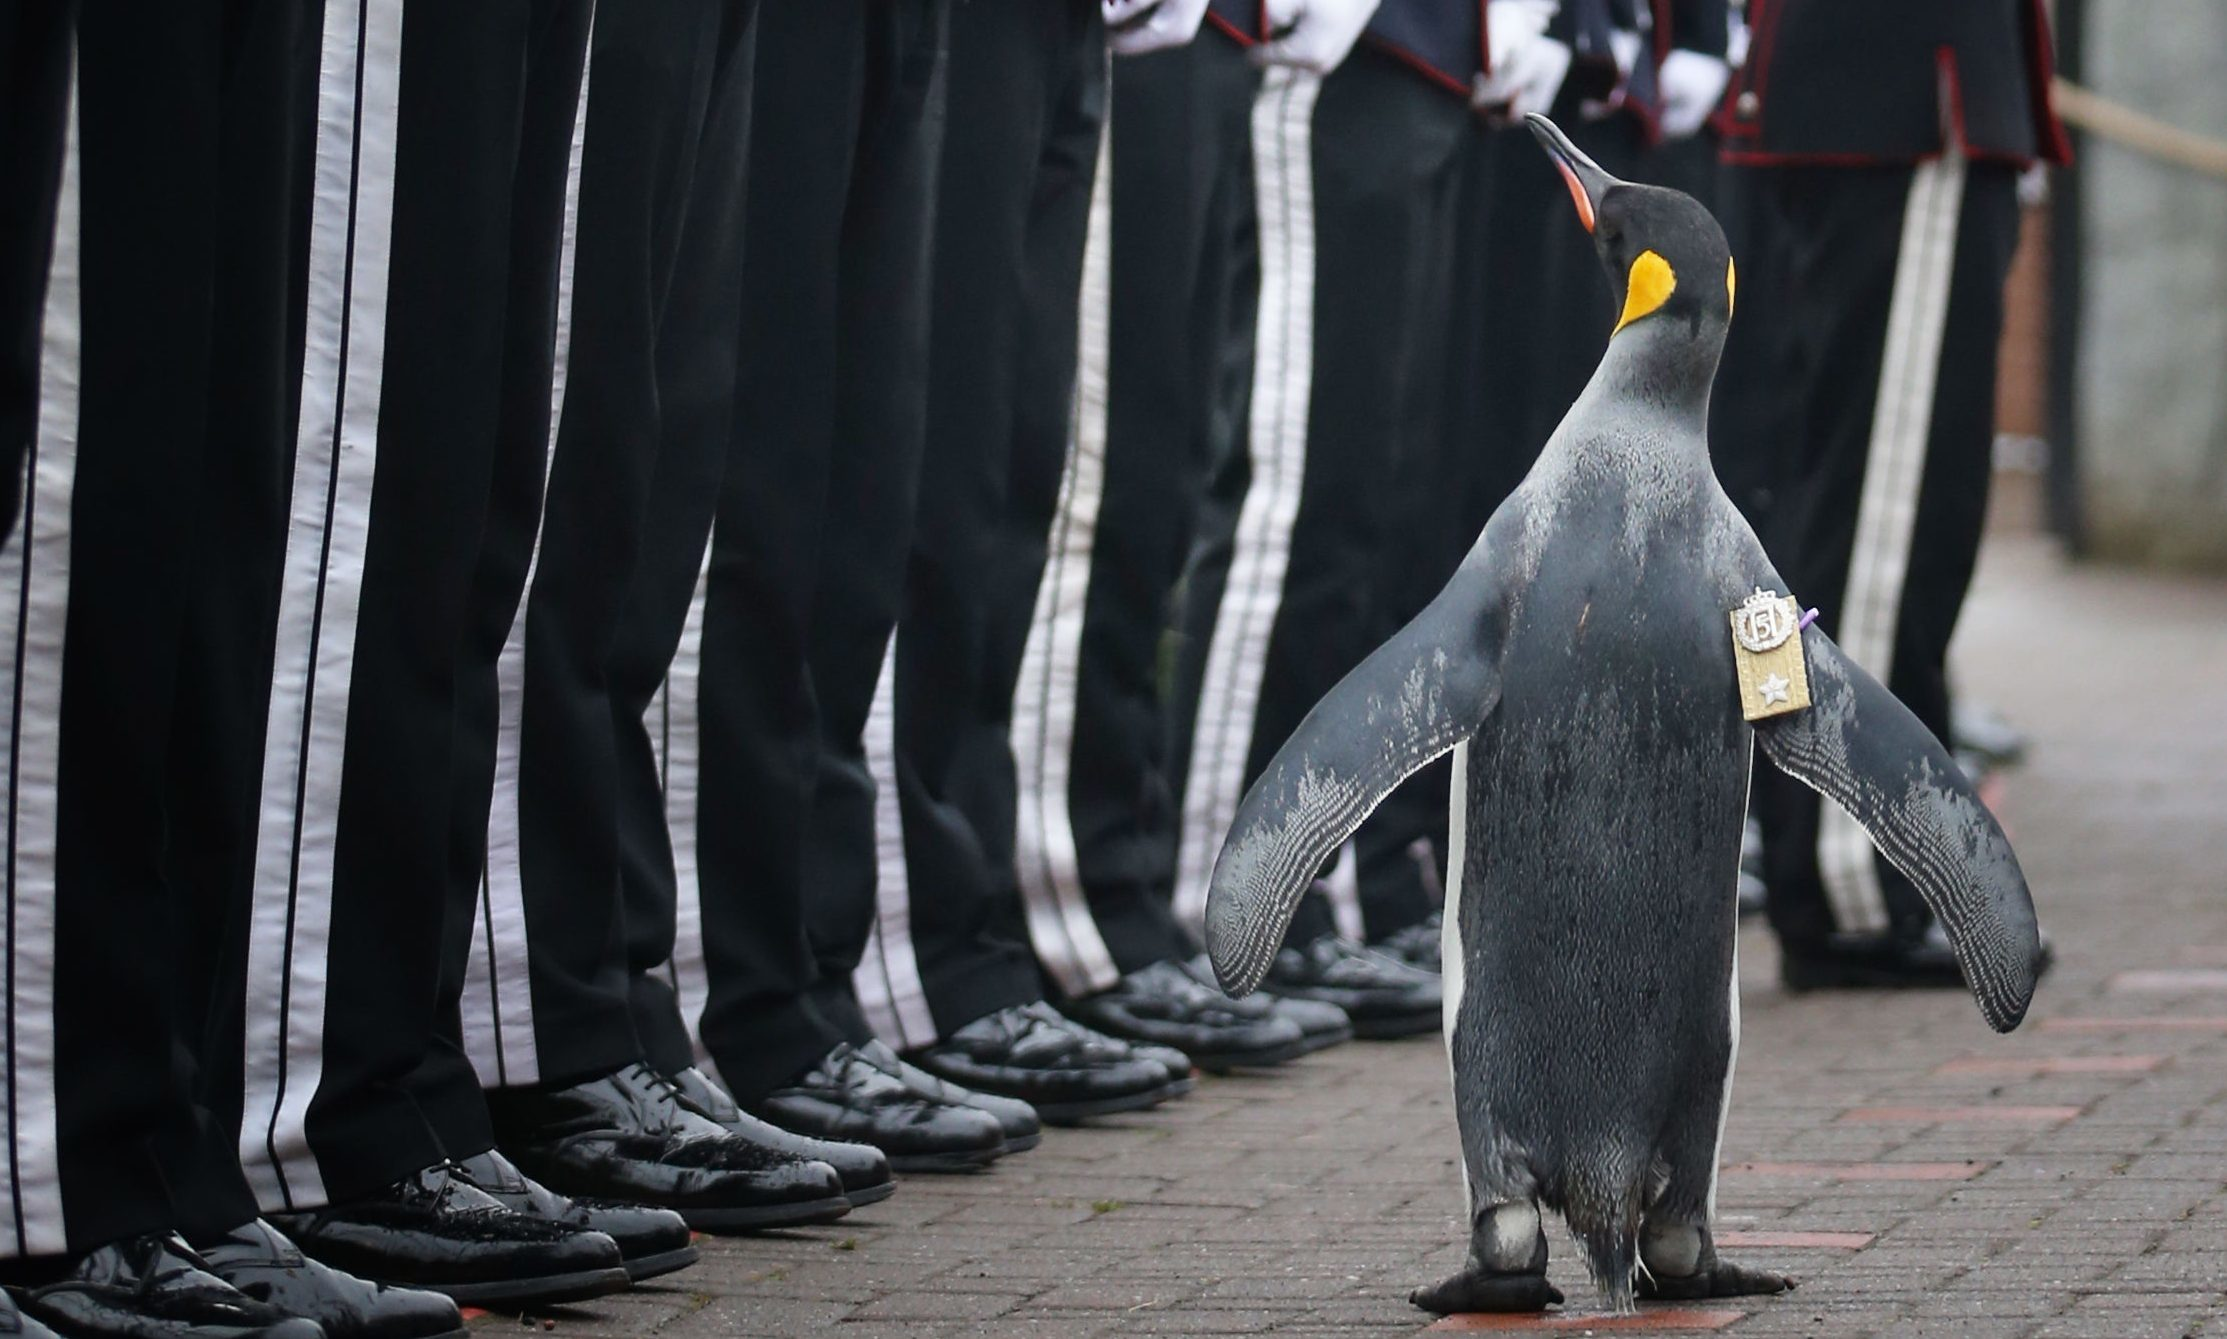 Uniformed soldiers of the King of Norway's Guard parade for inspection by their mascot, king penguin Nils Olav.